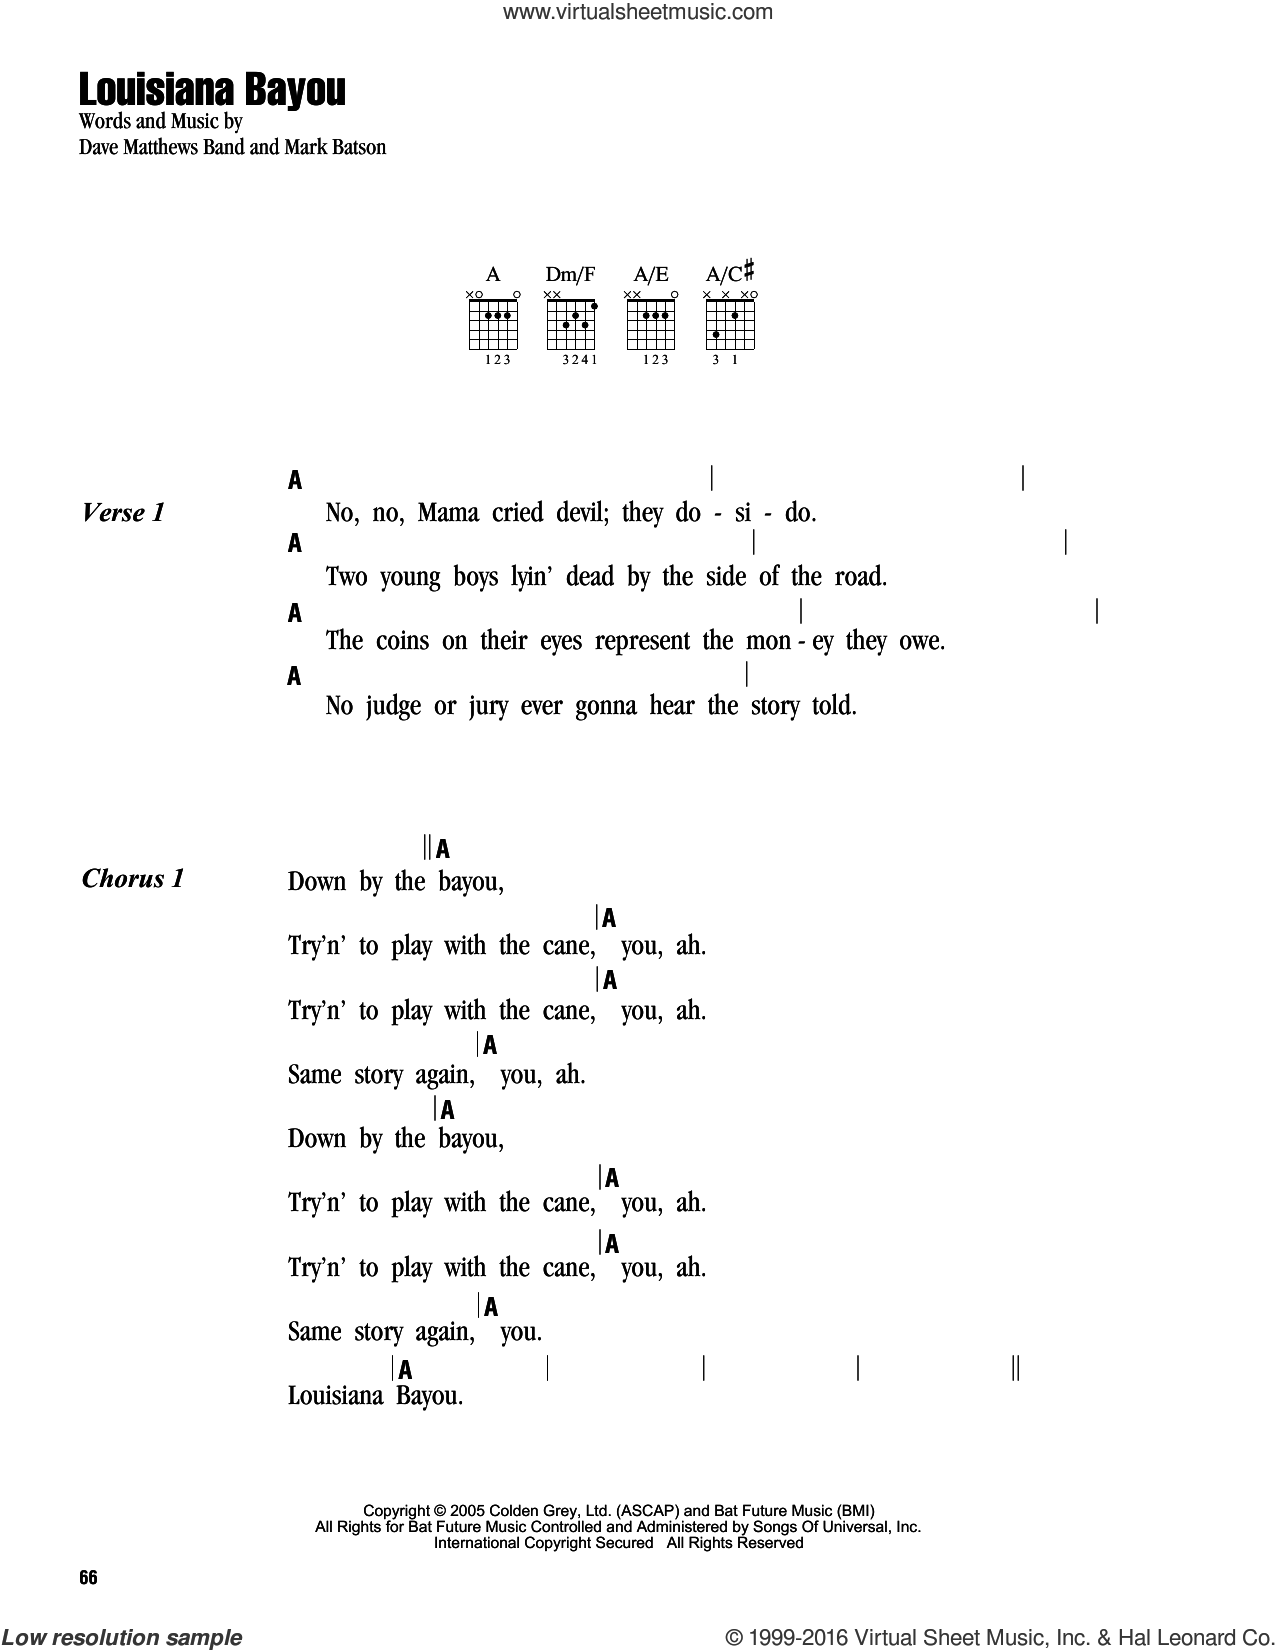 Louisiana Bayou sheet music for guitar (chords) by Mark Batson and Dave Matthews Band. Score Image Preview.